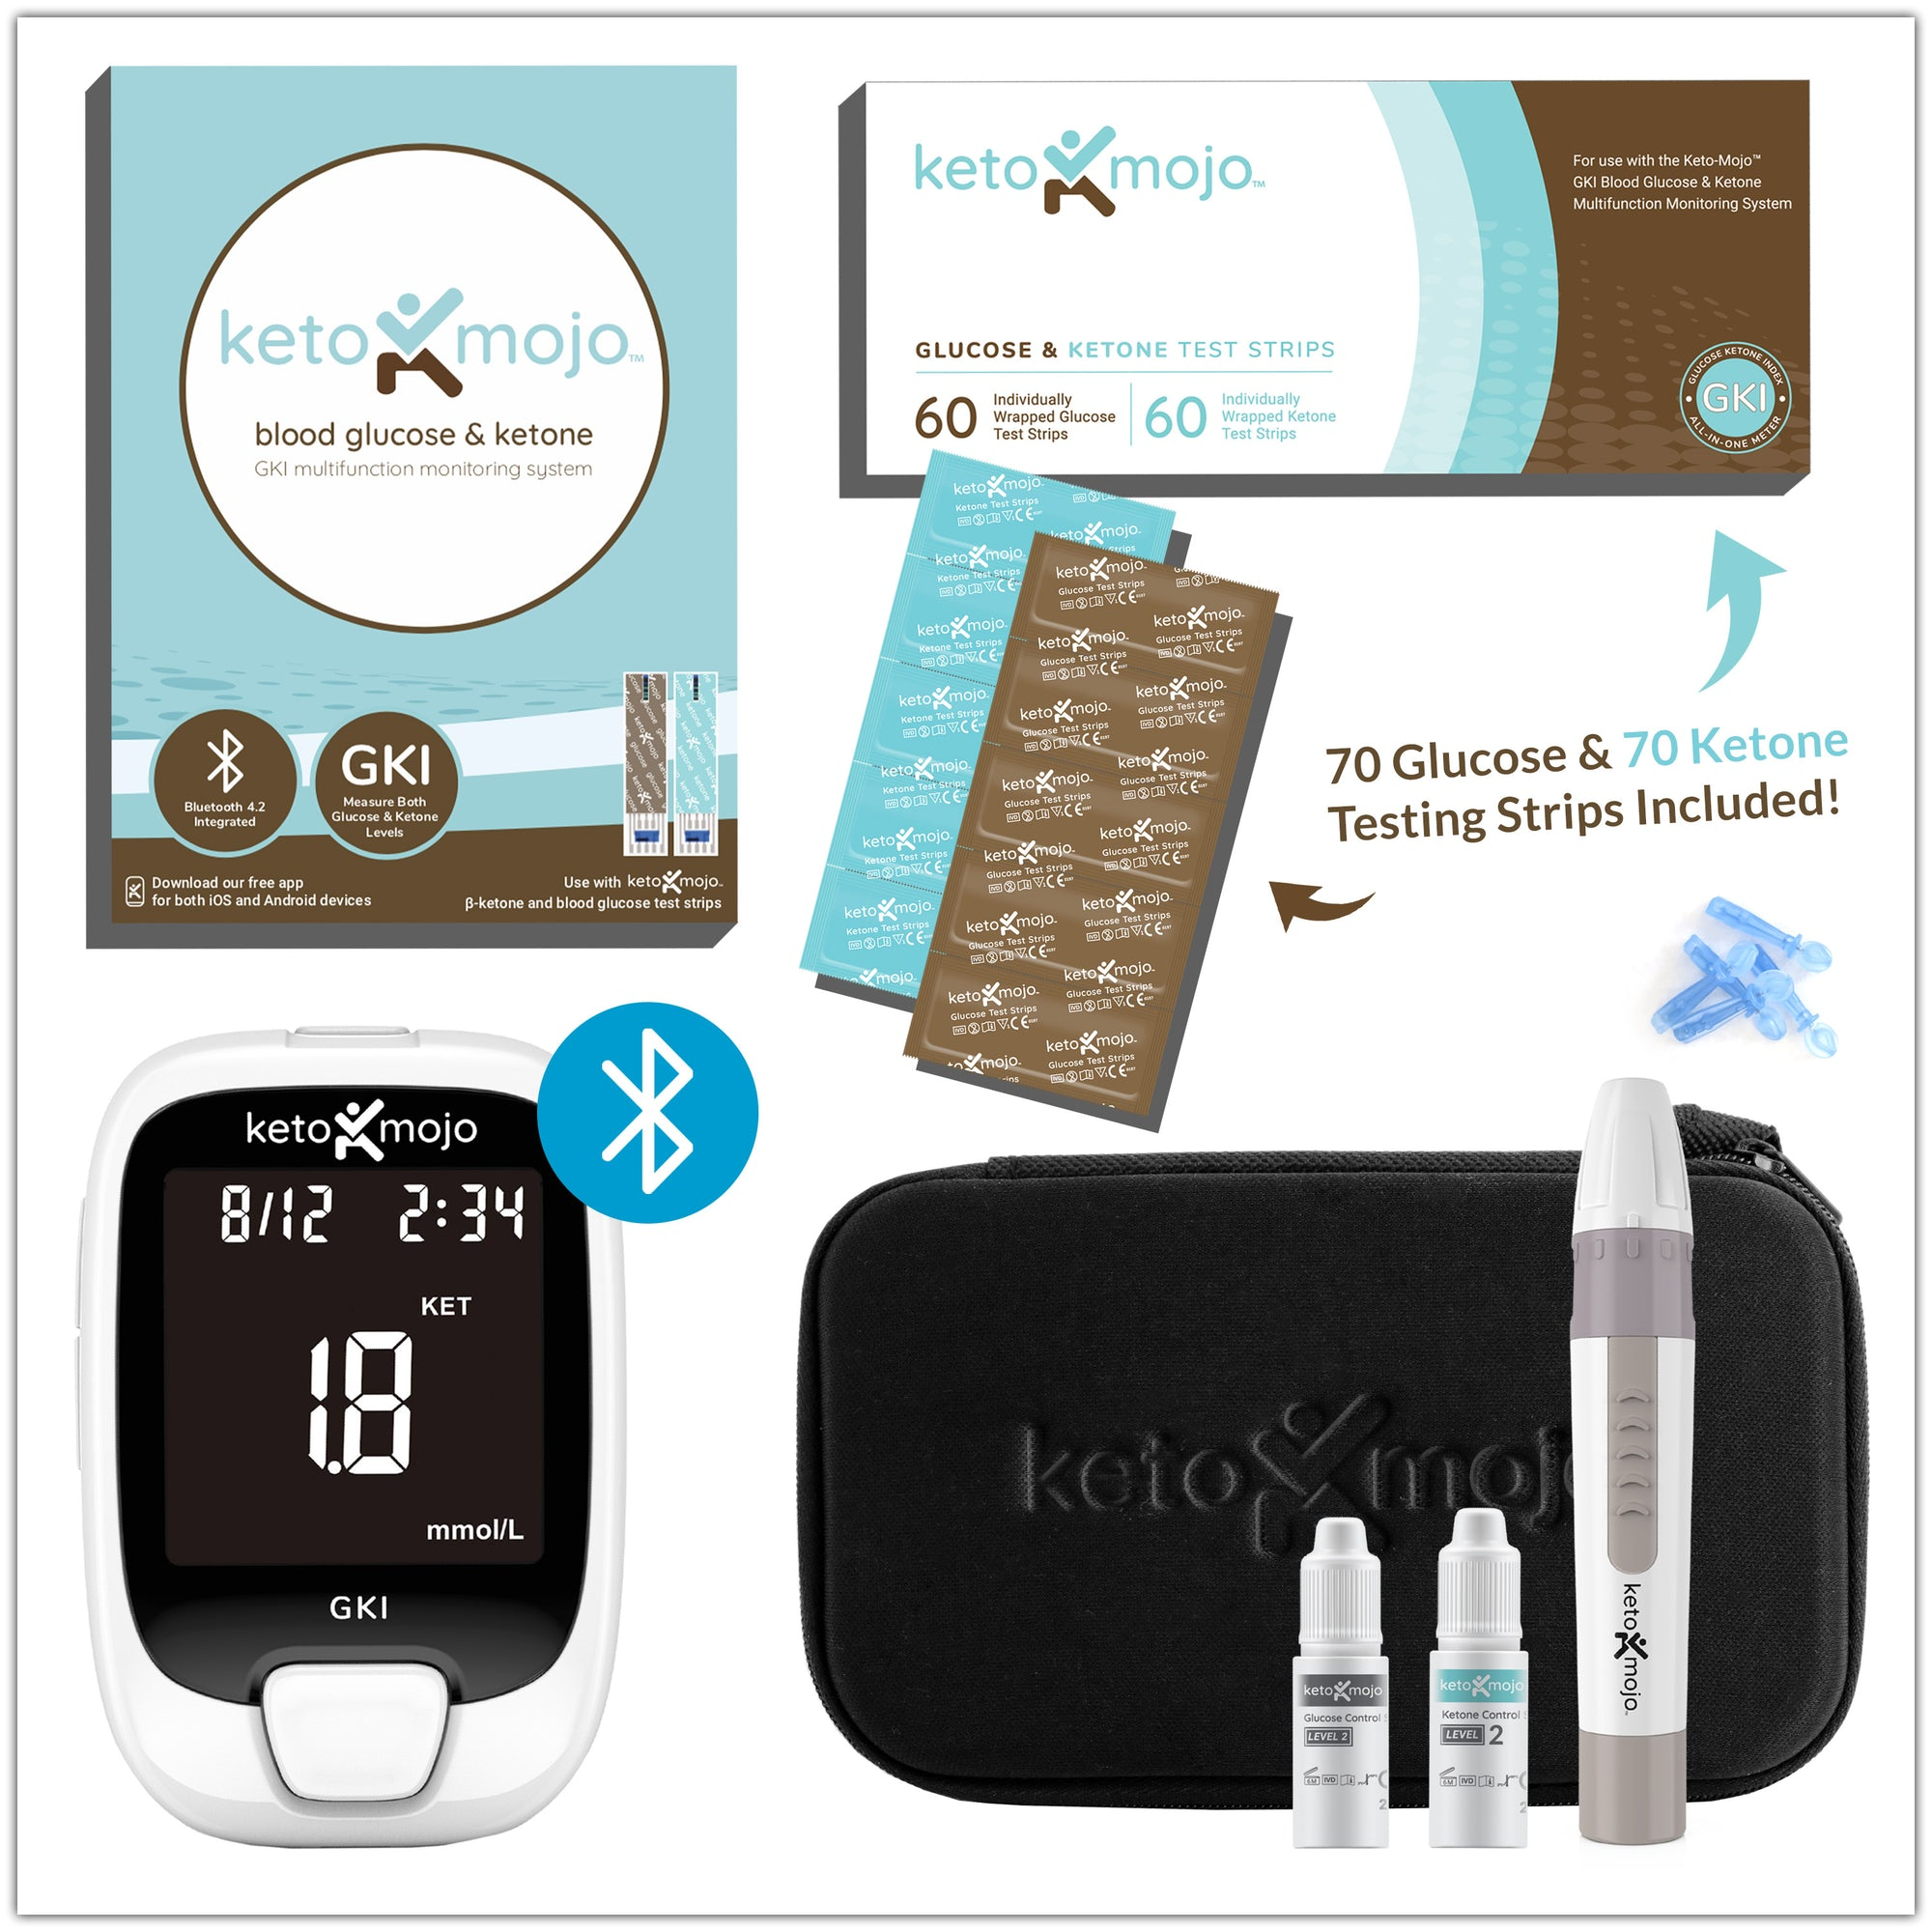 GKI-Bluetooth Blood Glucose & Ketone Meter - PREMIUM STARTER KIT (mg/dL)